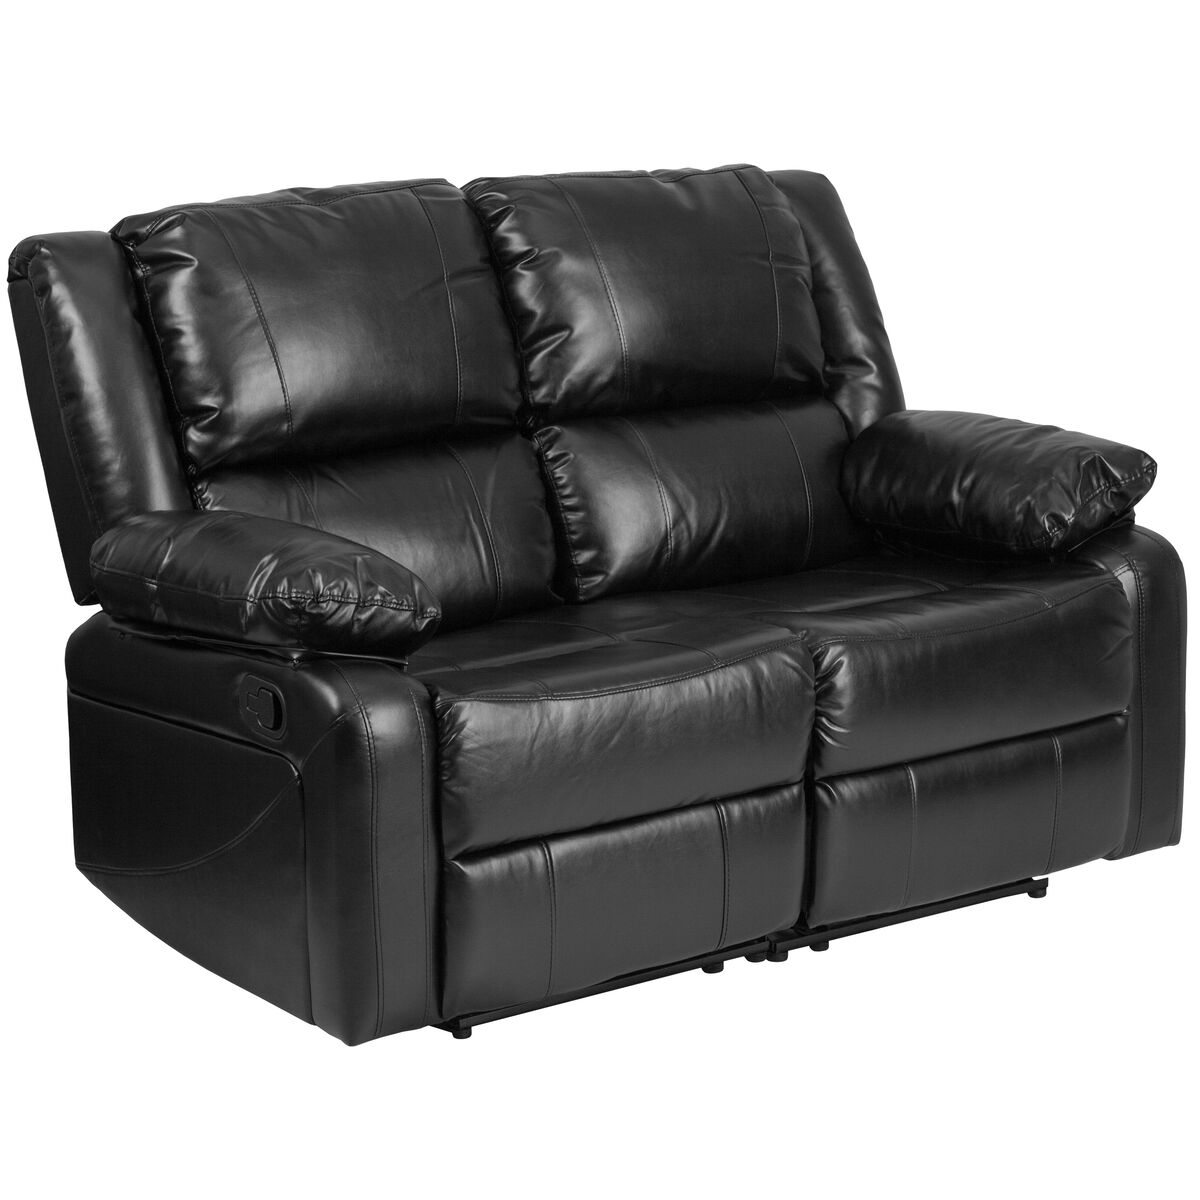 black leather recliners on sale black leather recline loveseat bt 70597 ls gg bizchair com 11230 | FLASH FURNITURE BT 70597 LS GG MAIN IMAGE